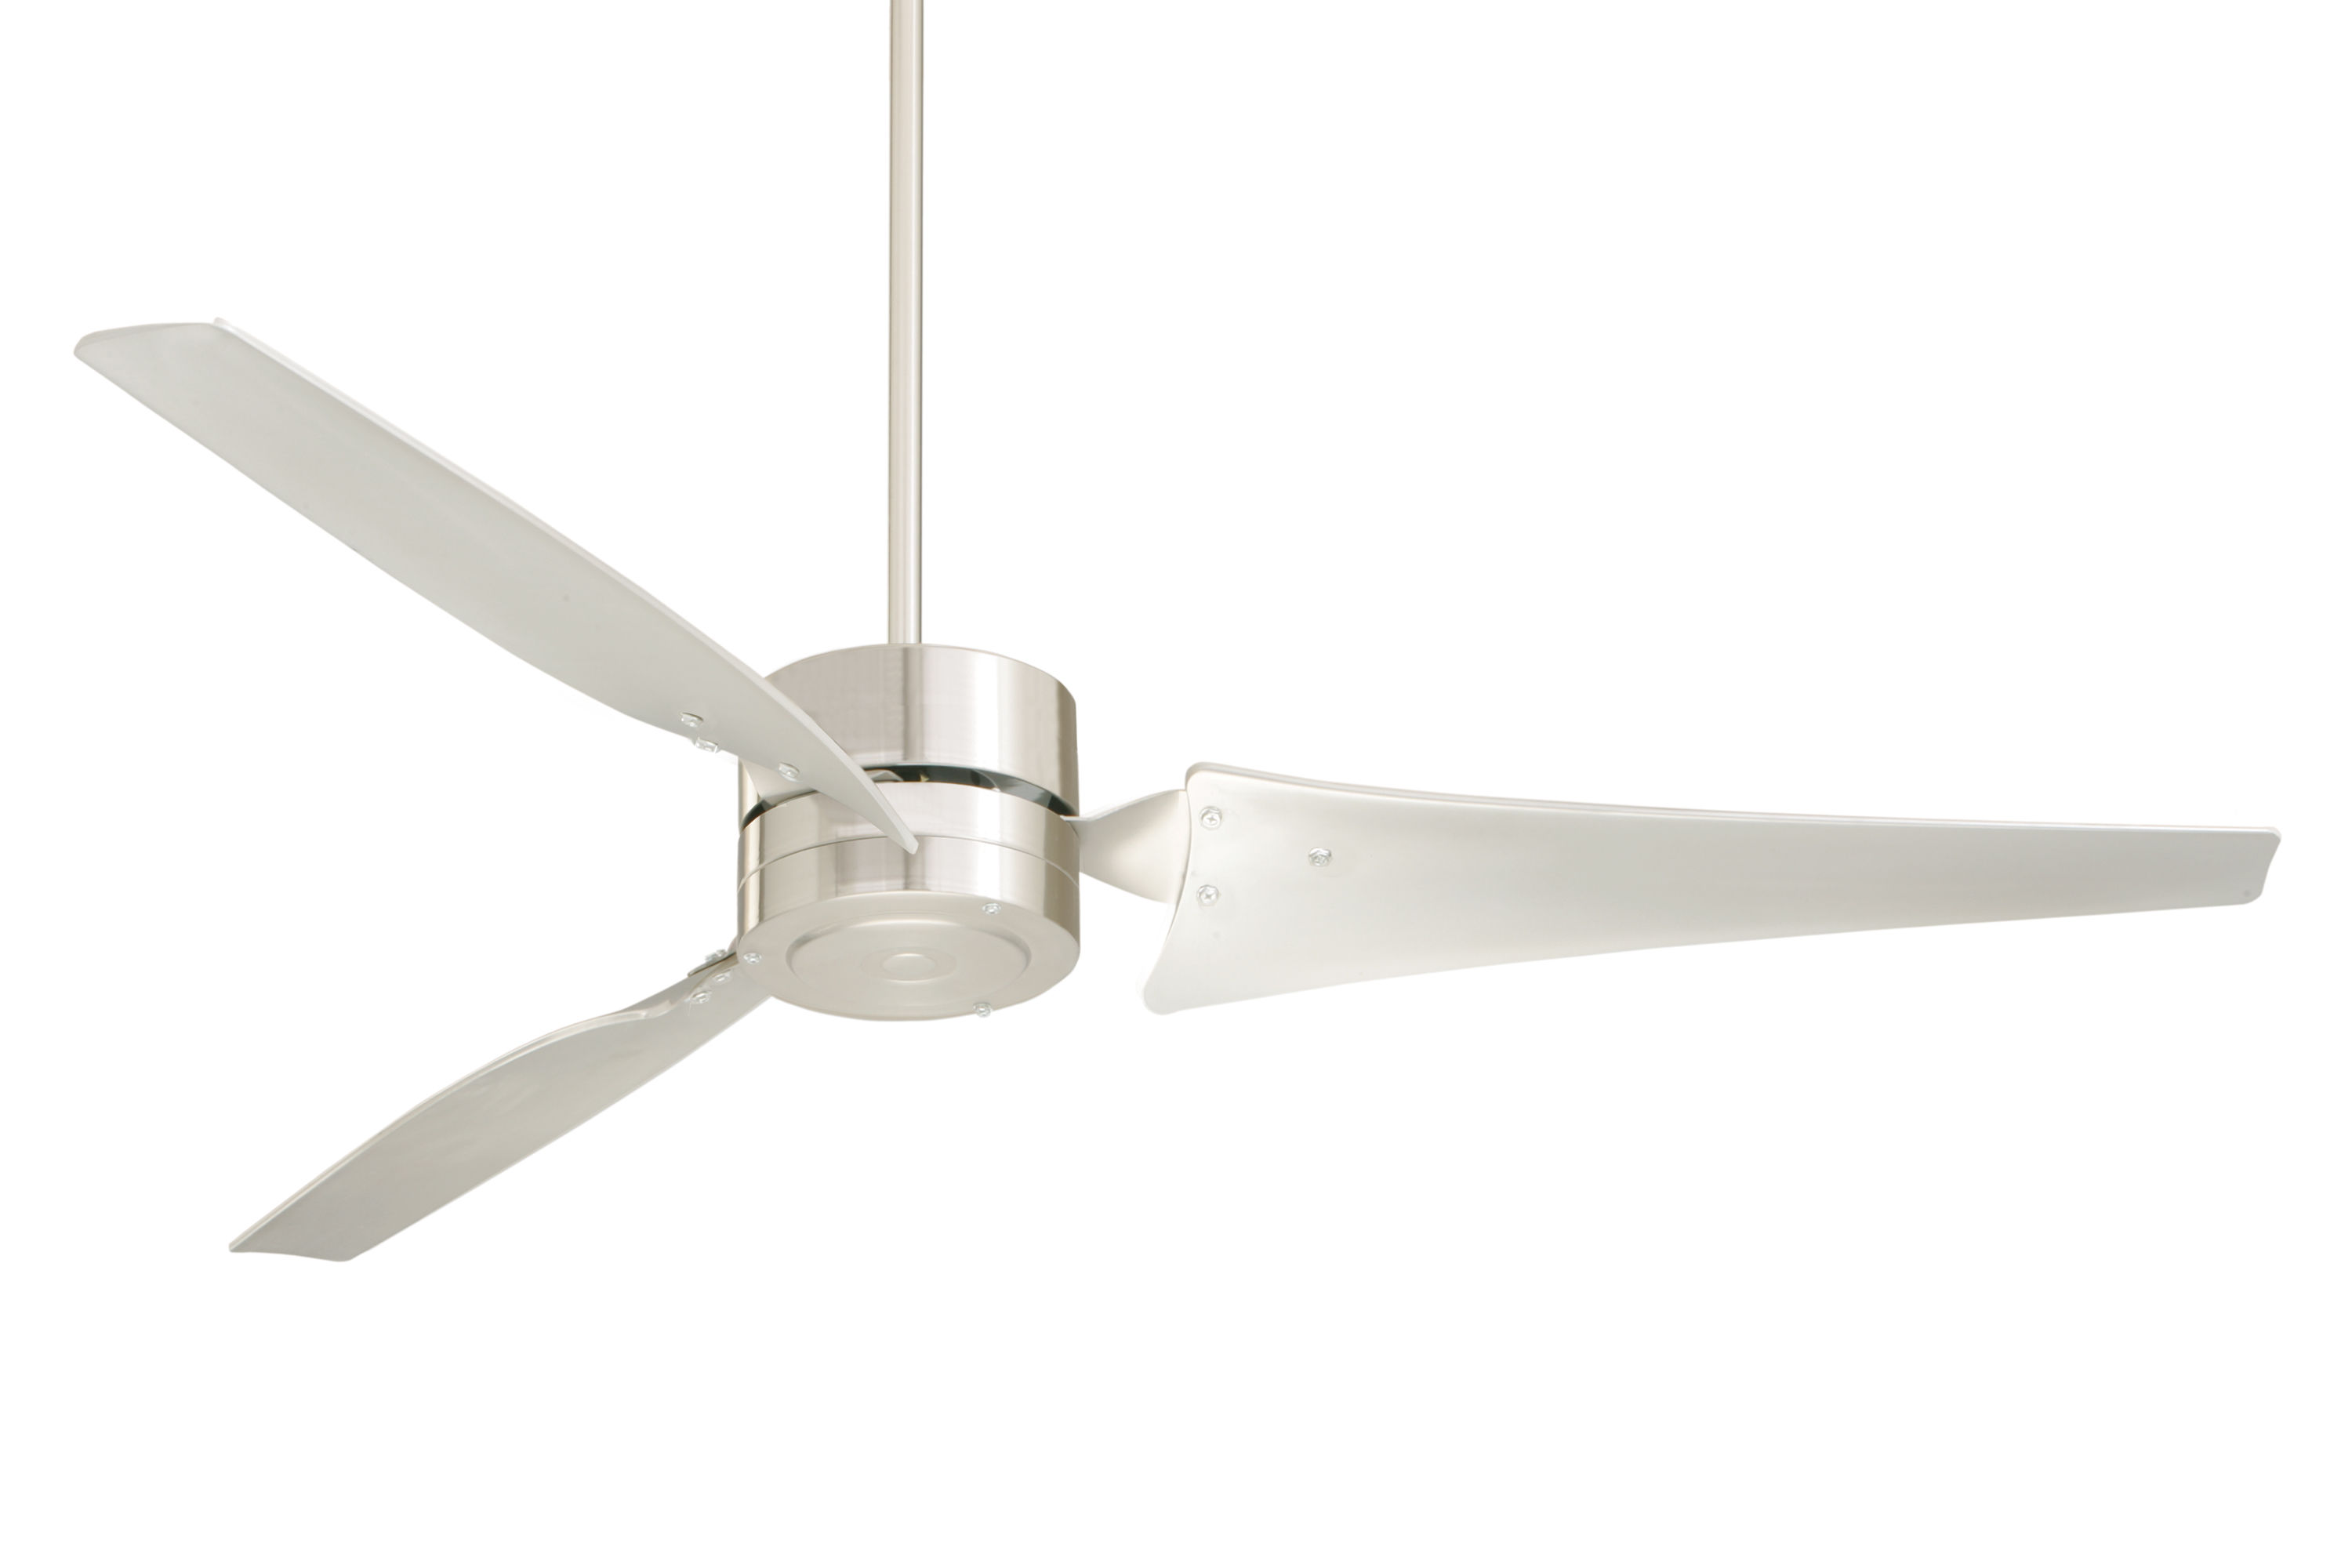 cfm fan capitol ceiling nickel polished inch and ceilings shown frost finish glass white in craftmade item blade illusion